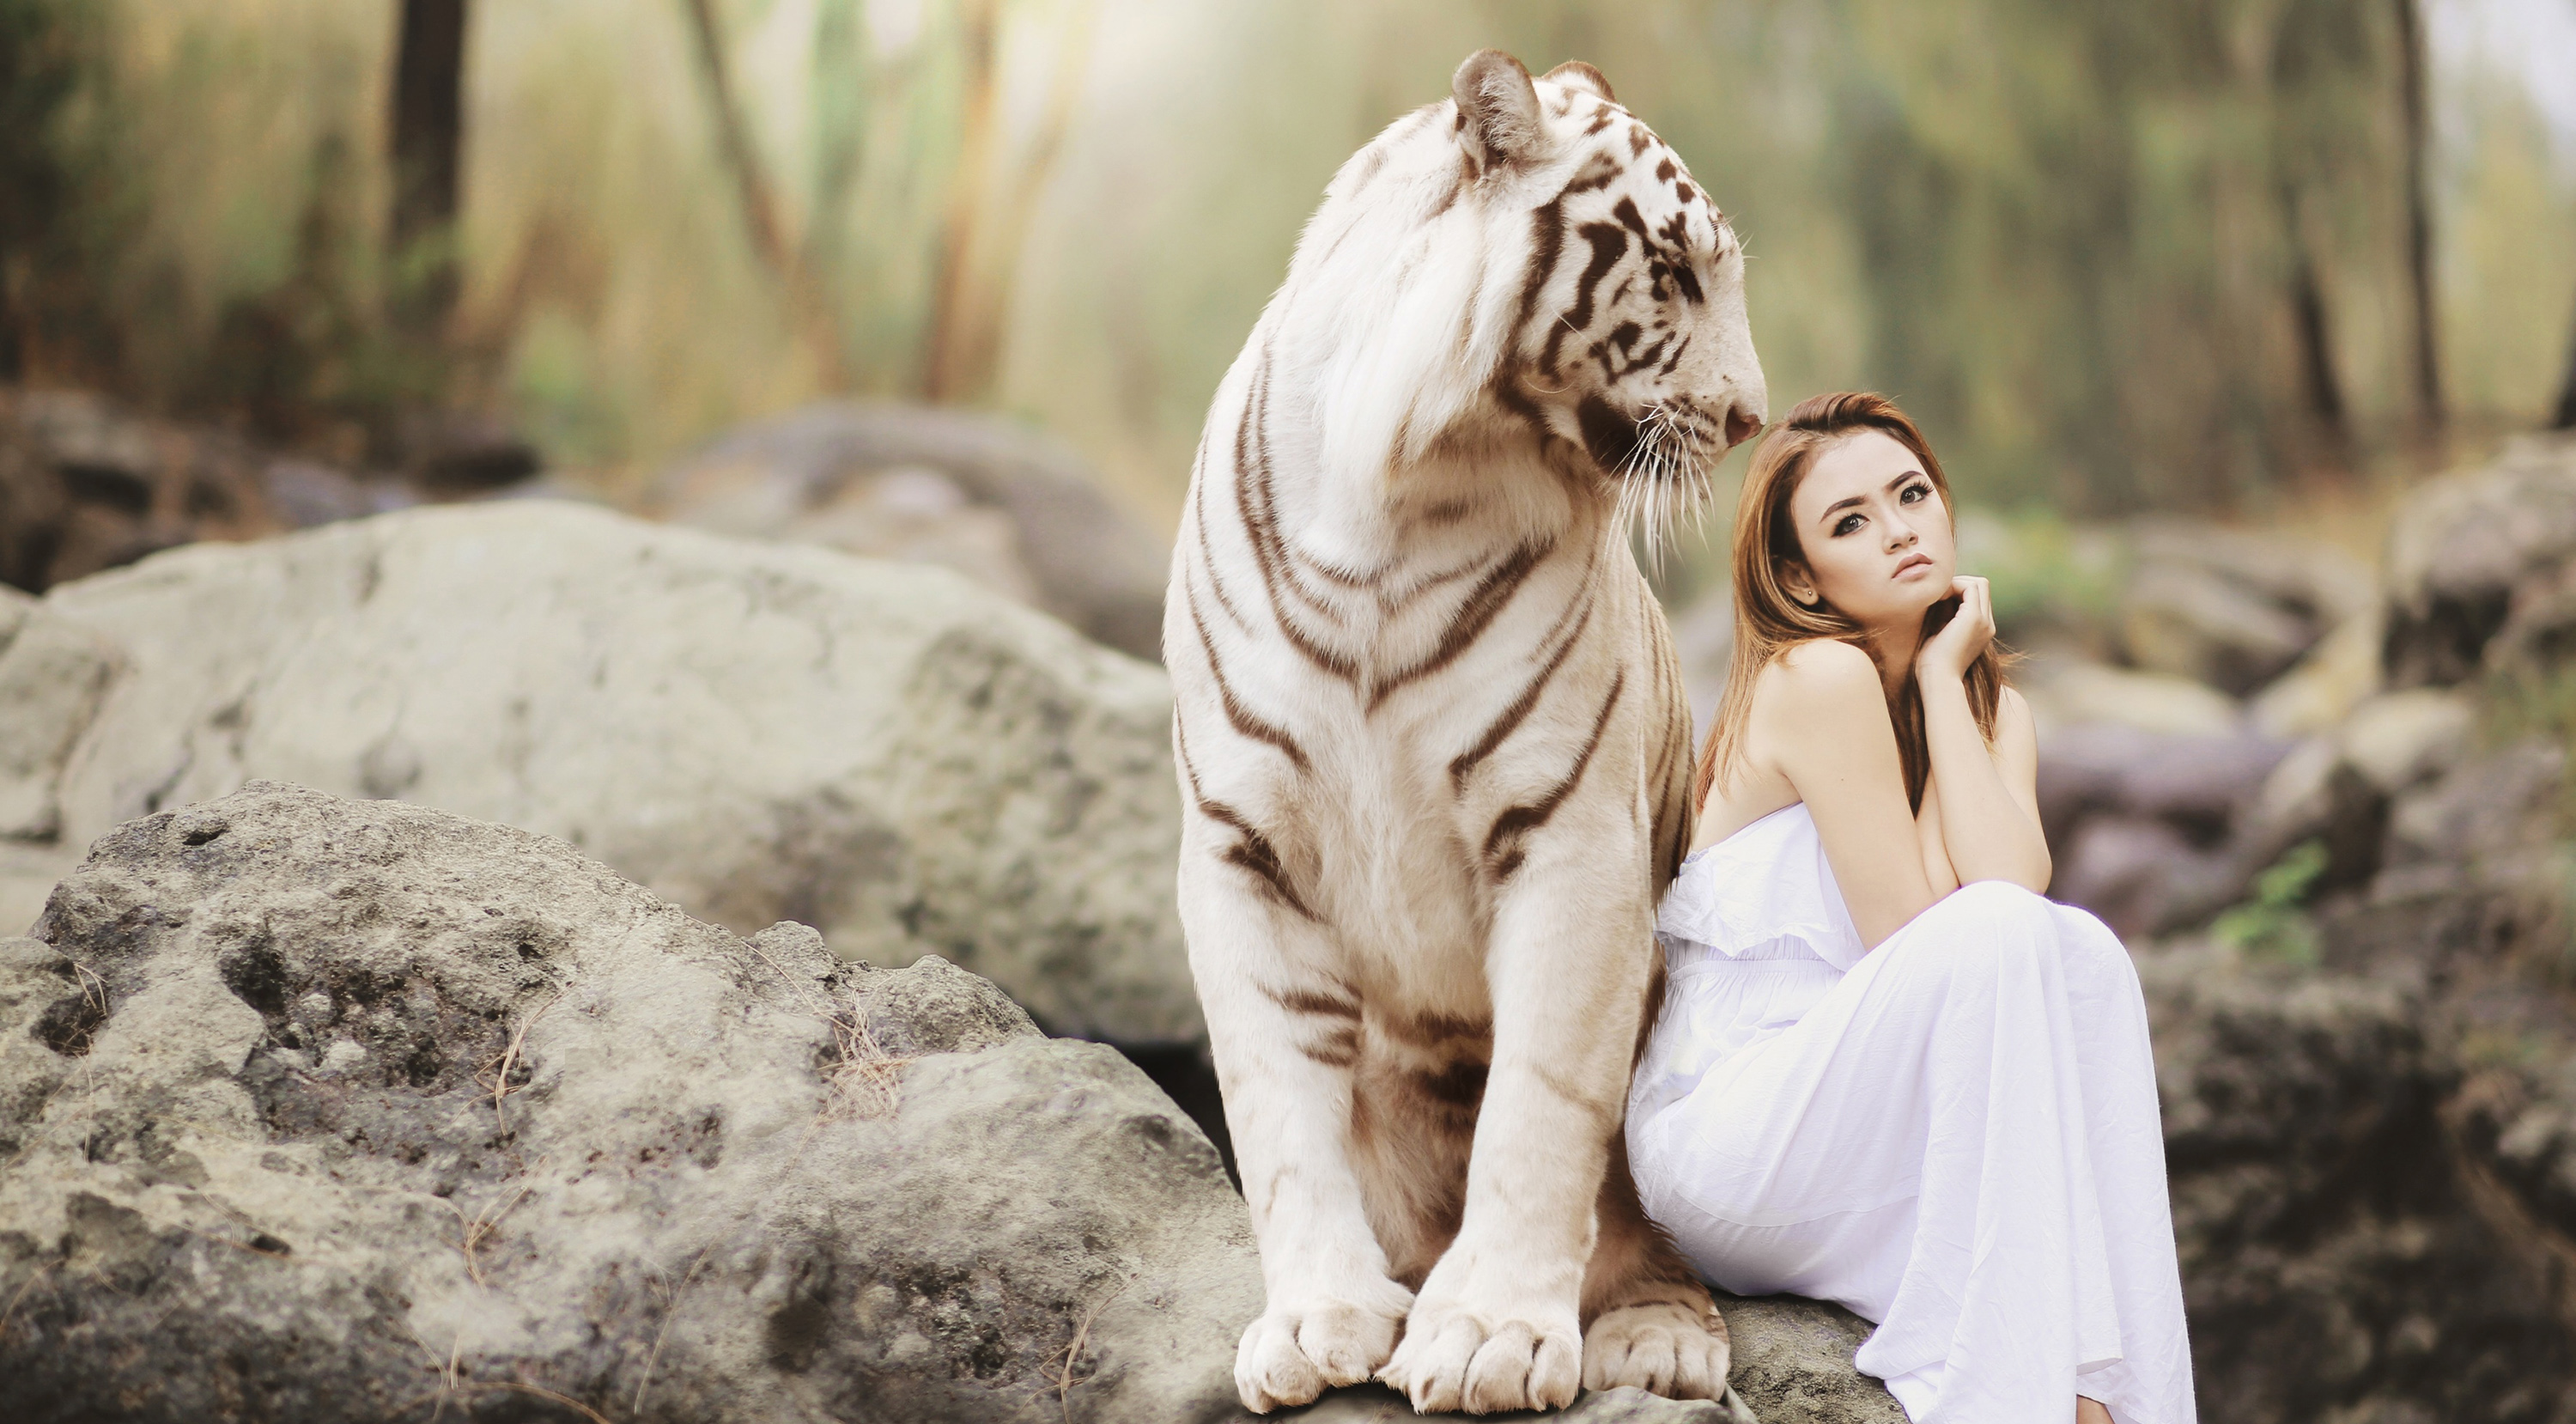 White Tiger and Female Beauty 54858